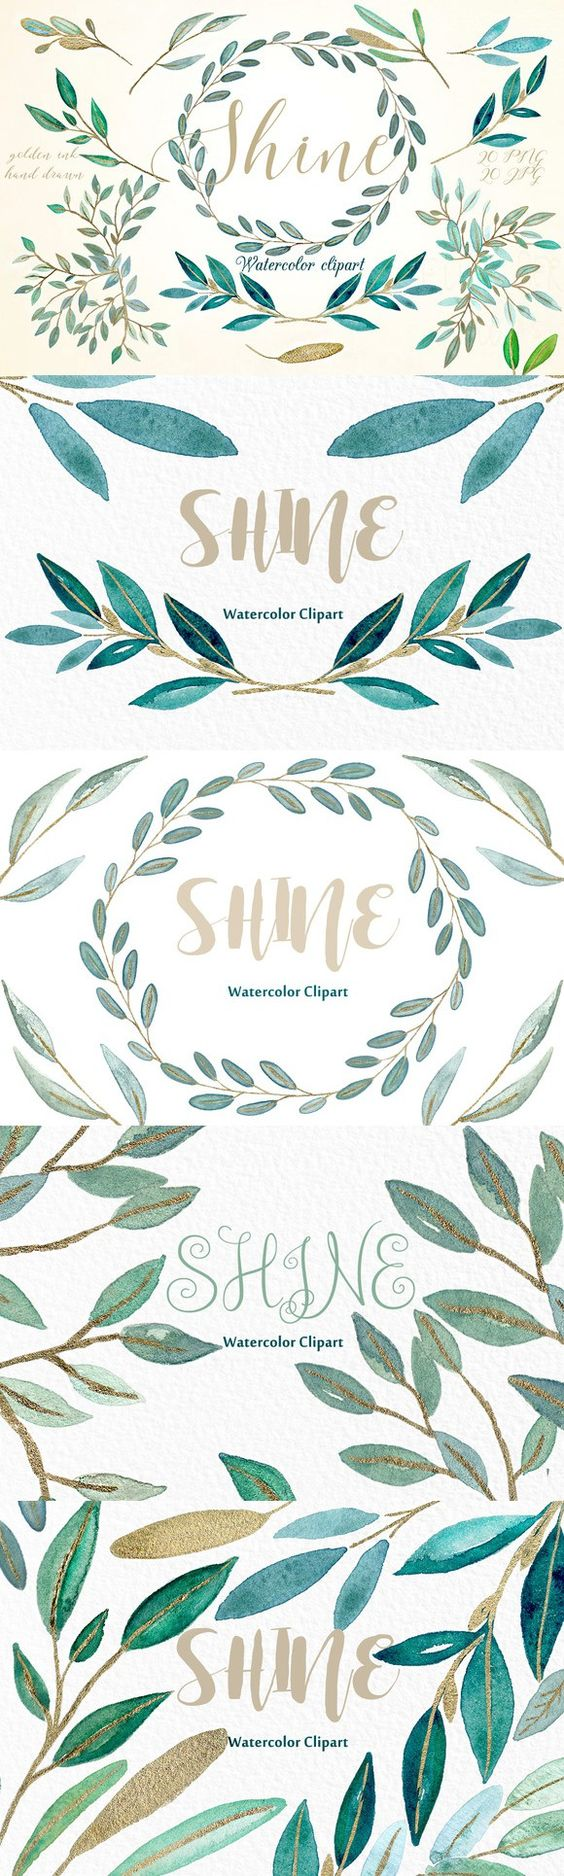 Shine gold leaves Watercolor clipart